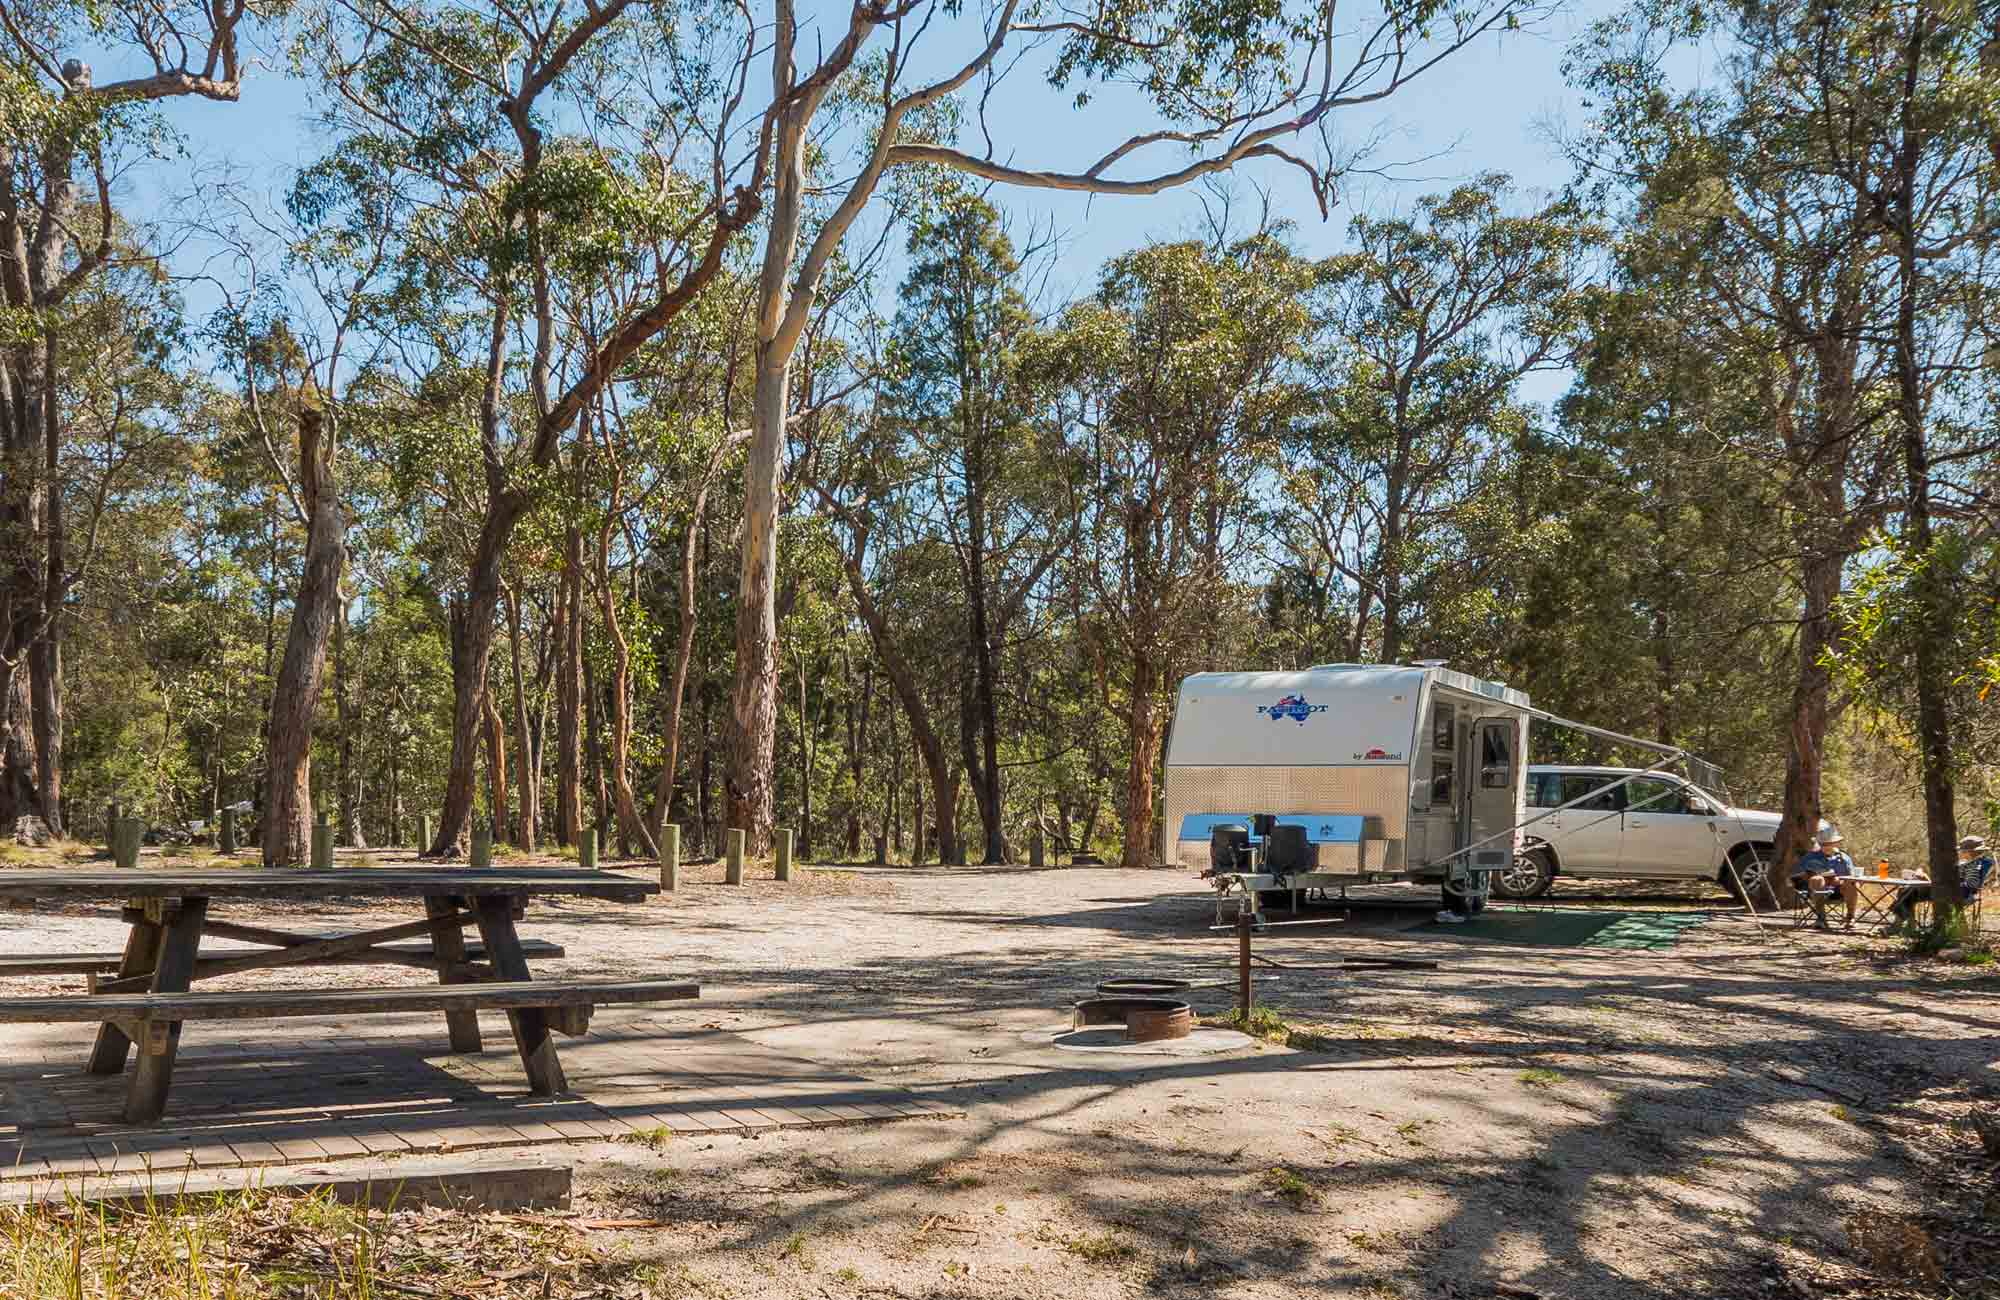 Cypress Pine campground, Boonoo Boonoo National Park. Photo: David Young